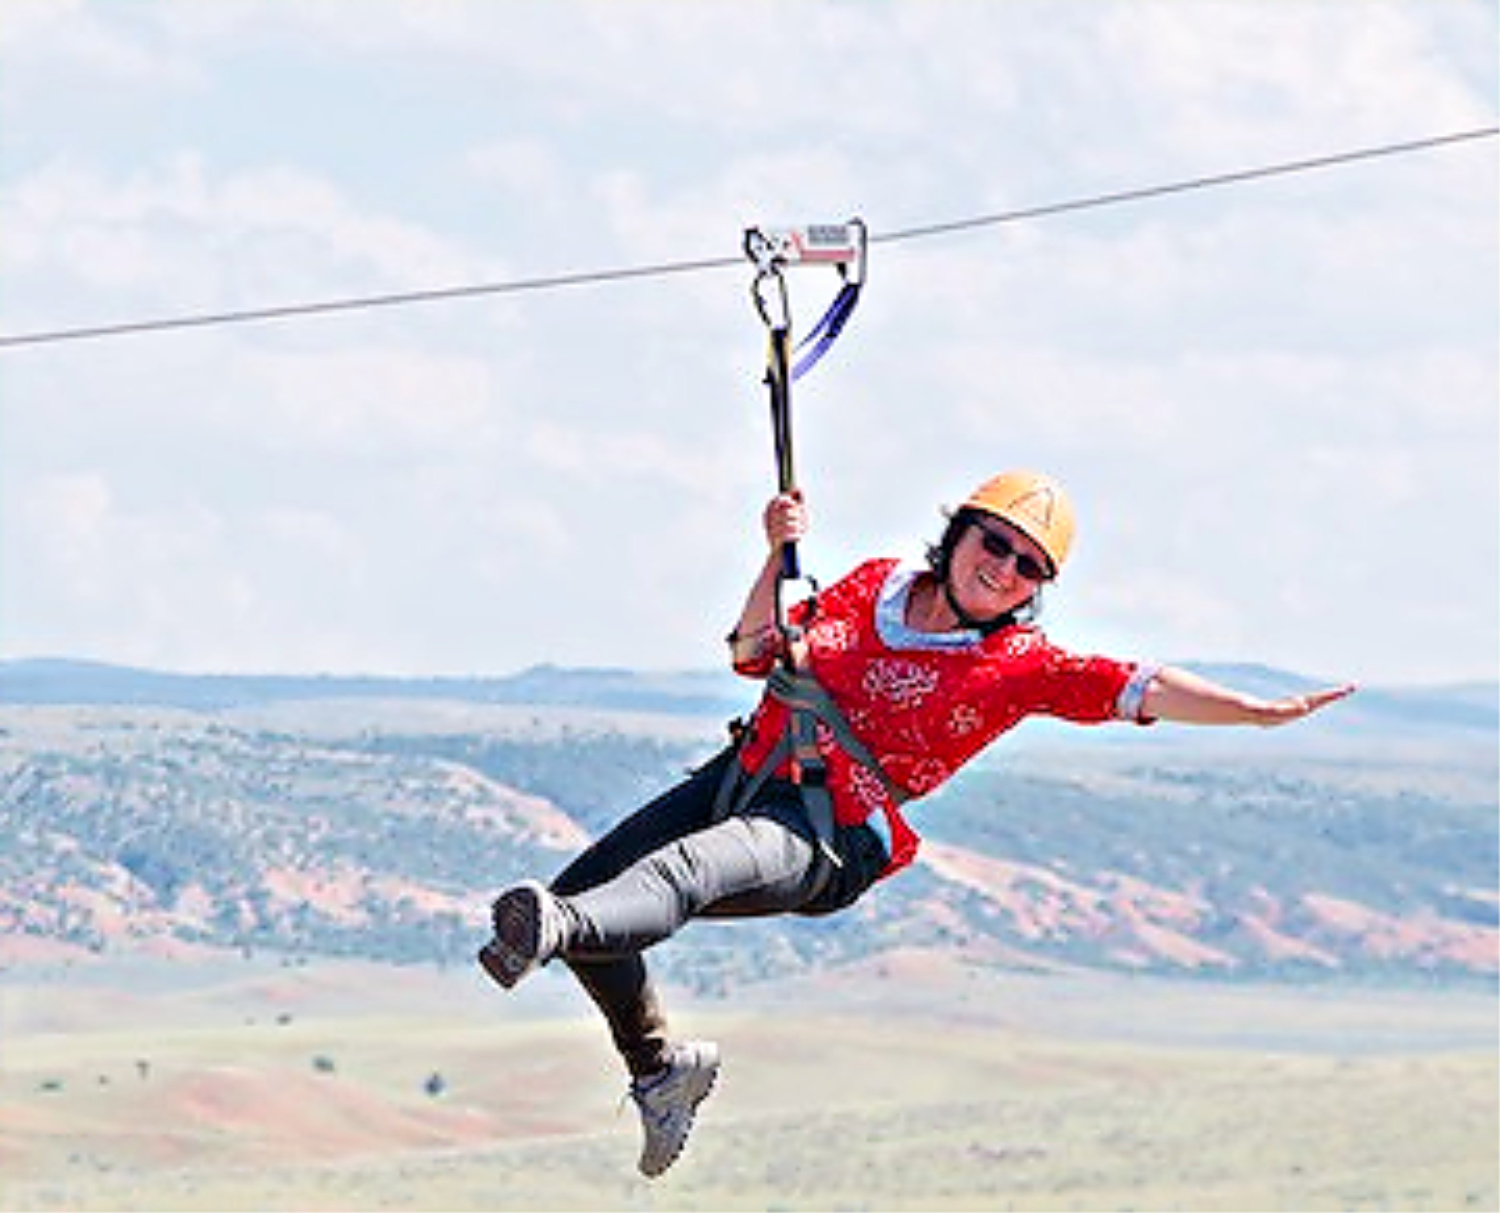 Wild West vacation in Red Reflet ranch include ziplining!